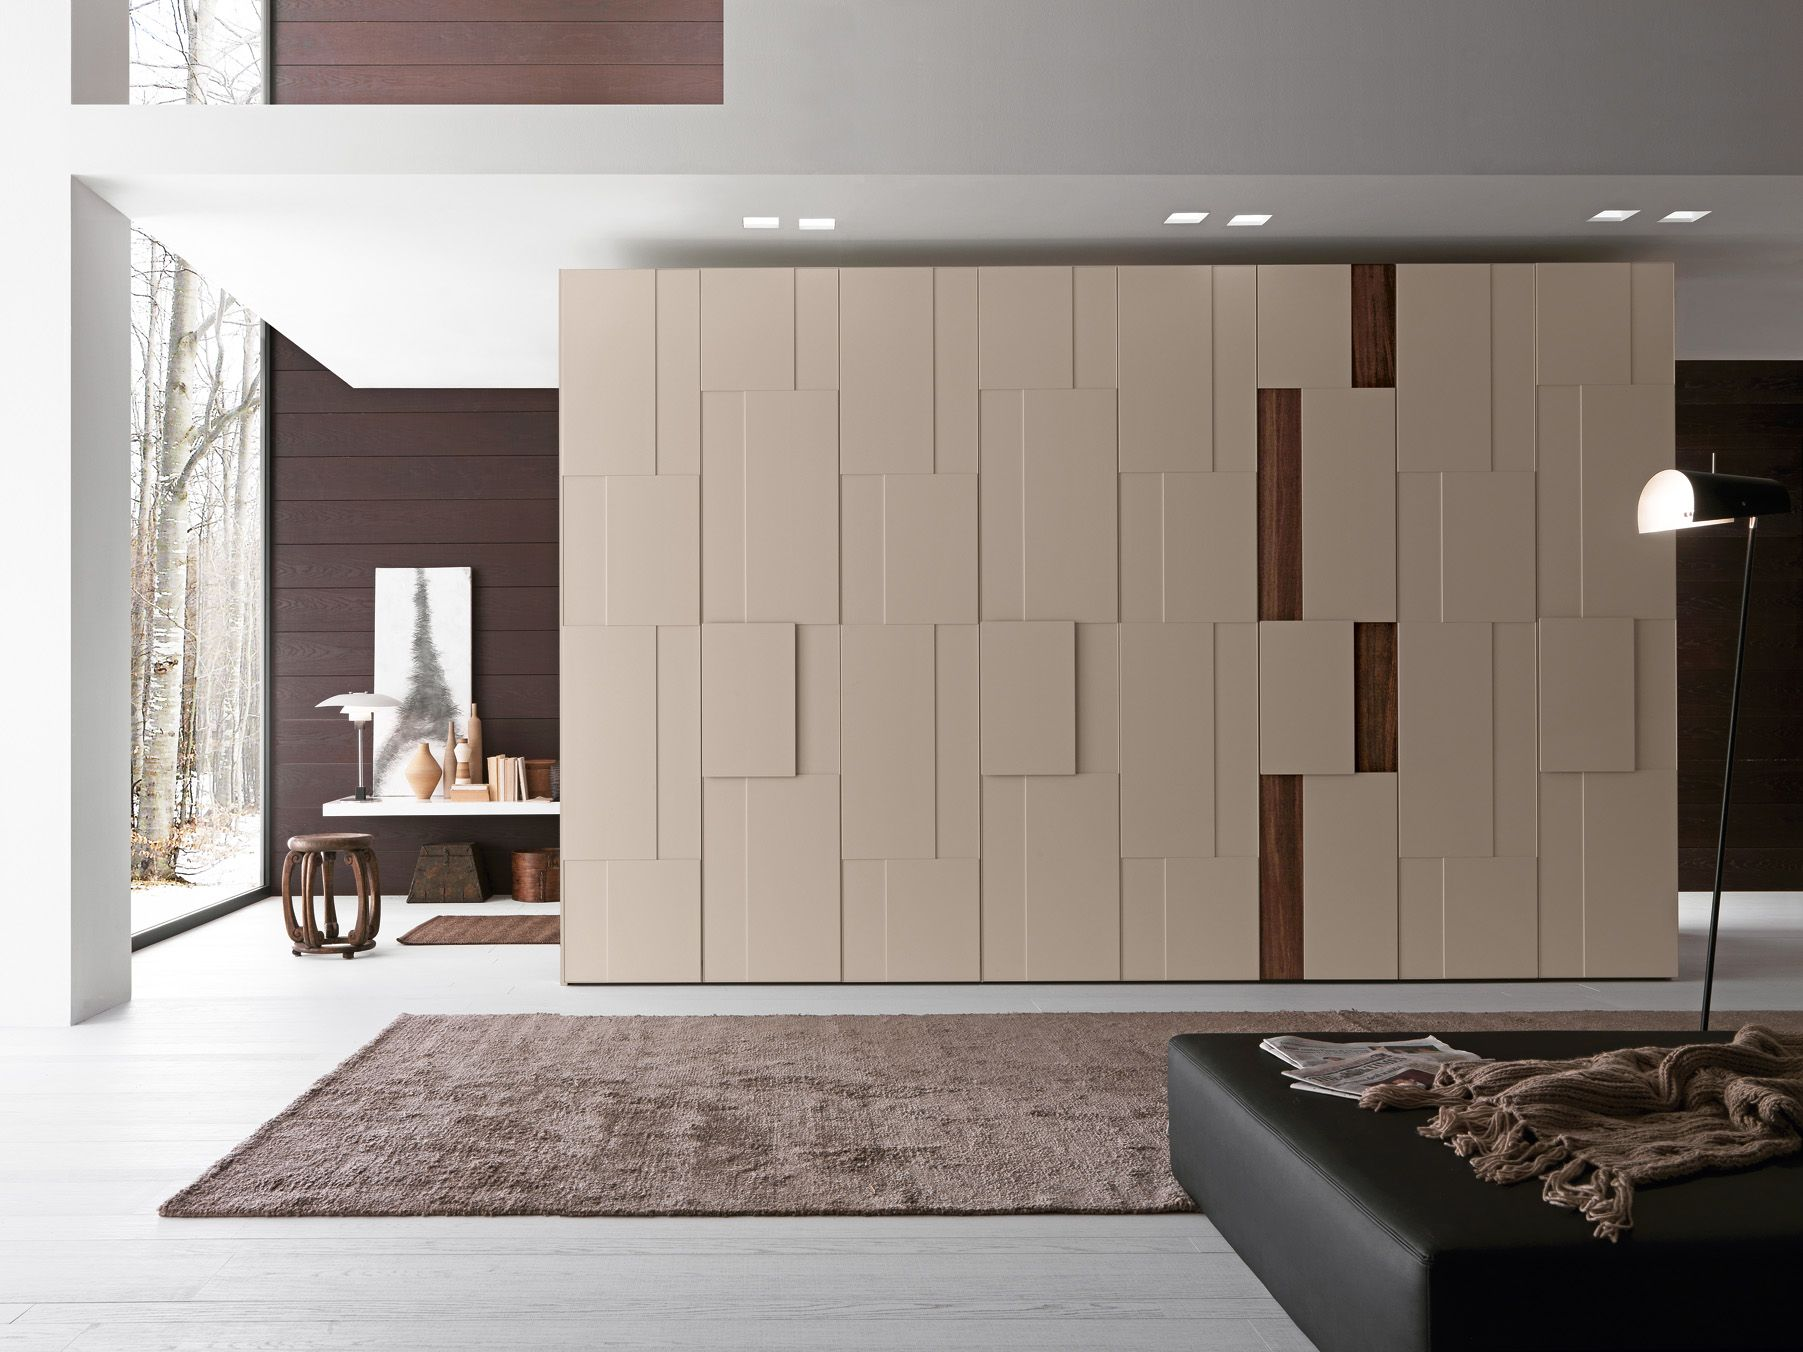 Brown Theme Interior Design For Wardrobe For Bungalow Interior Alluring Latest Almirah Designs Bedroom Decorating Design